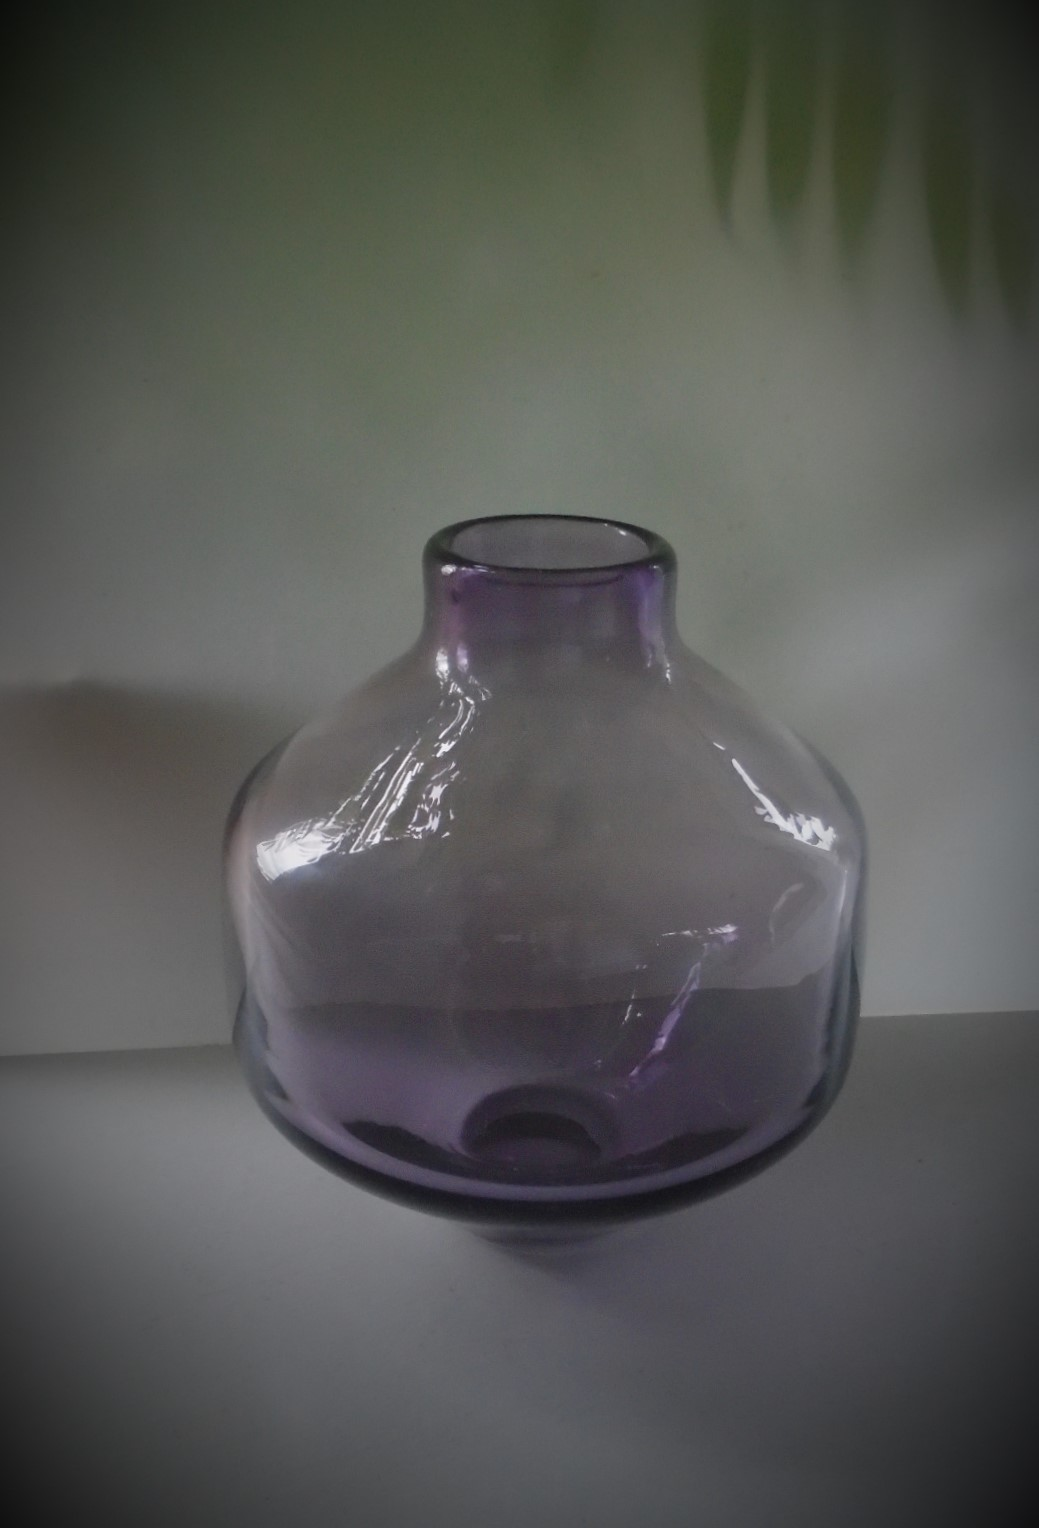 16.5cms high vintage Wedgwood amethyst angular vase designed by Ronald Stennett- Willson pattern No. RSW10